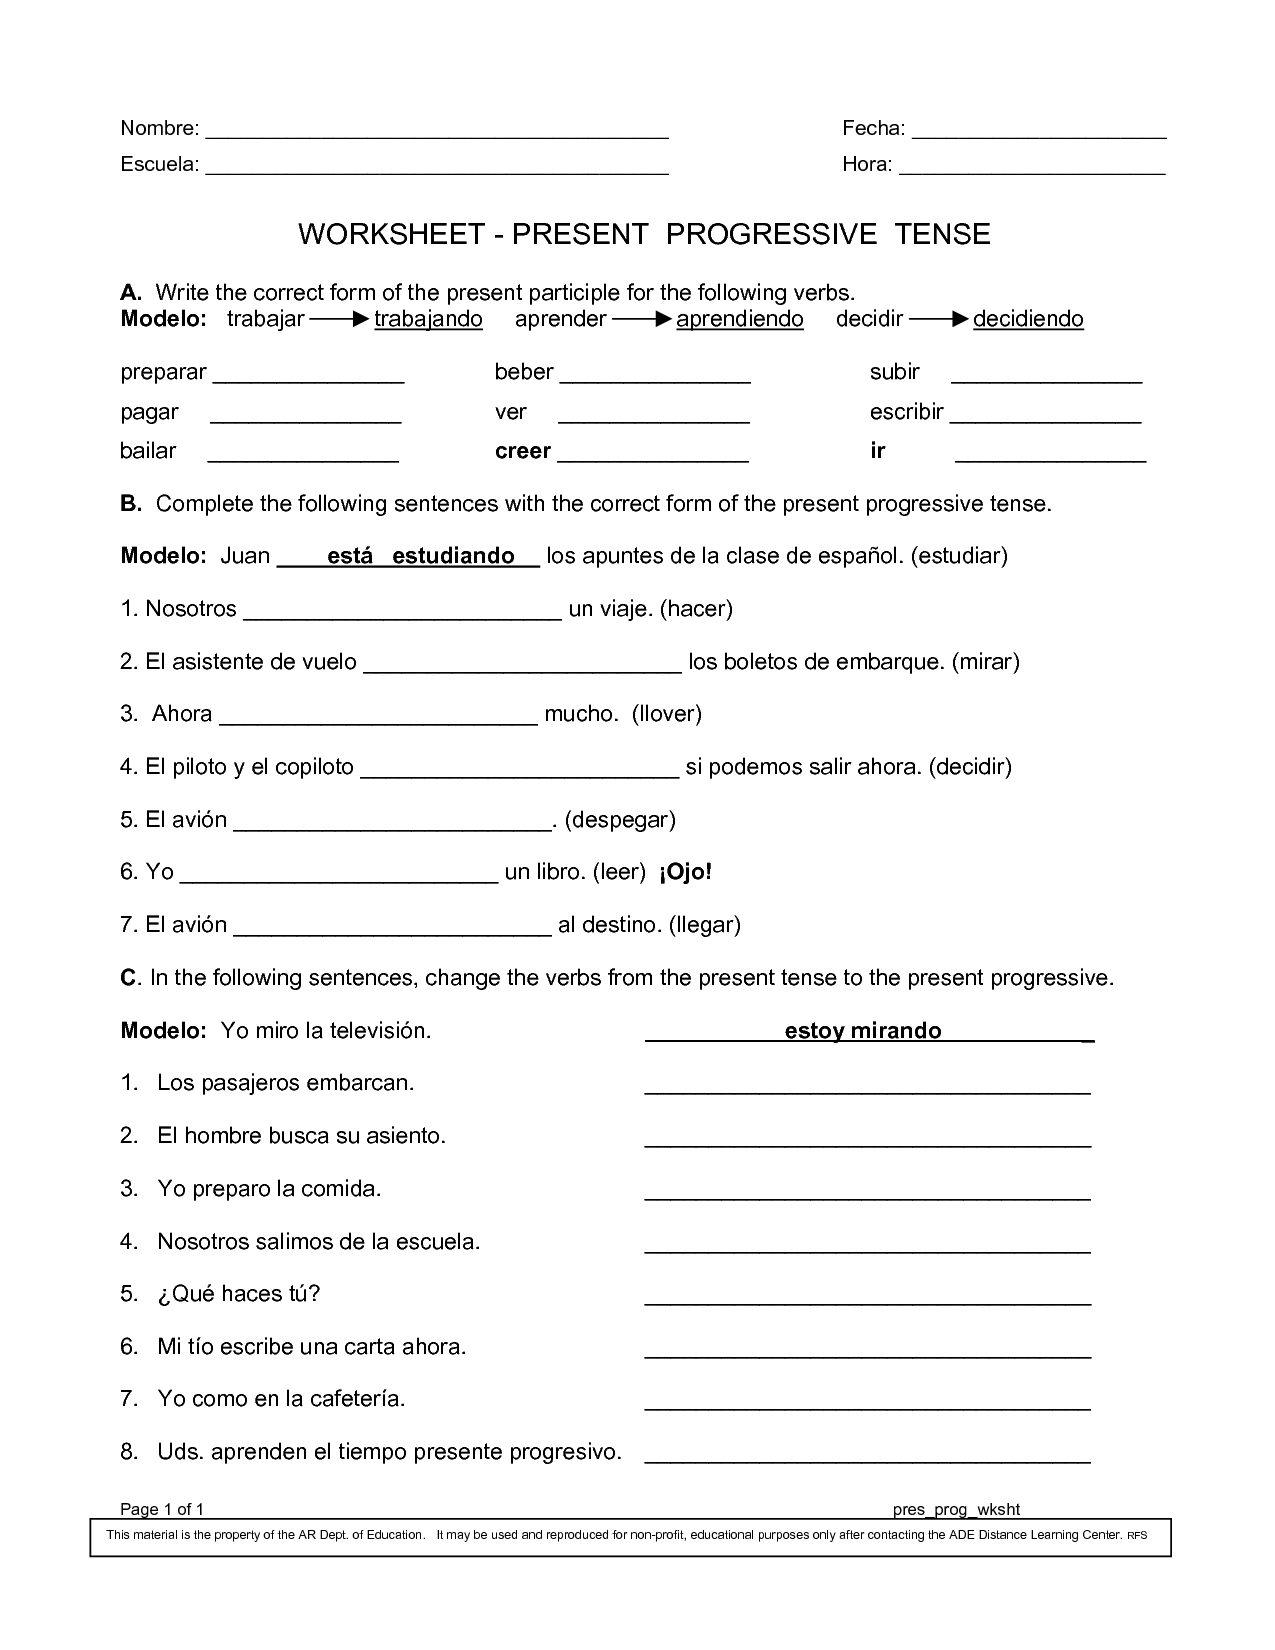 Worksheets Present Progressive Worksheets spanish worksheets printables present progressive worksheet worksheet